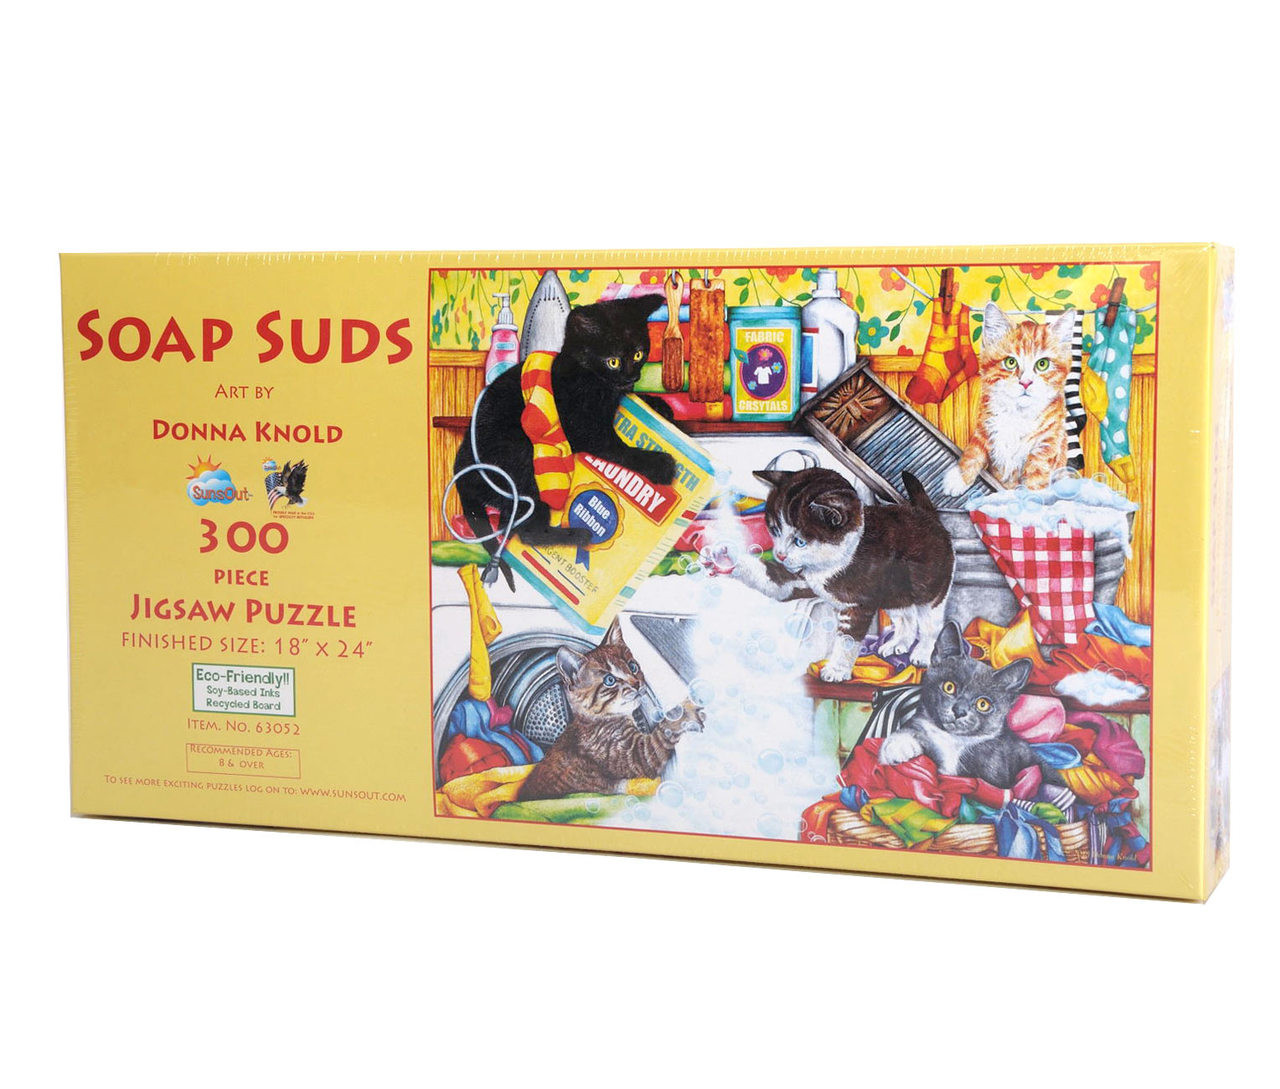 Soap Suds